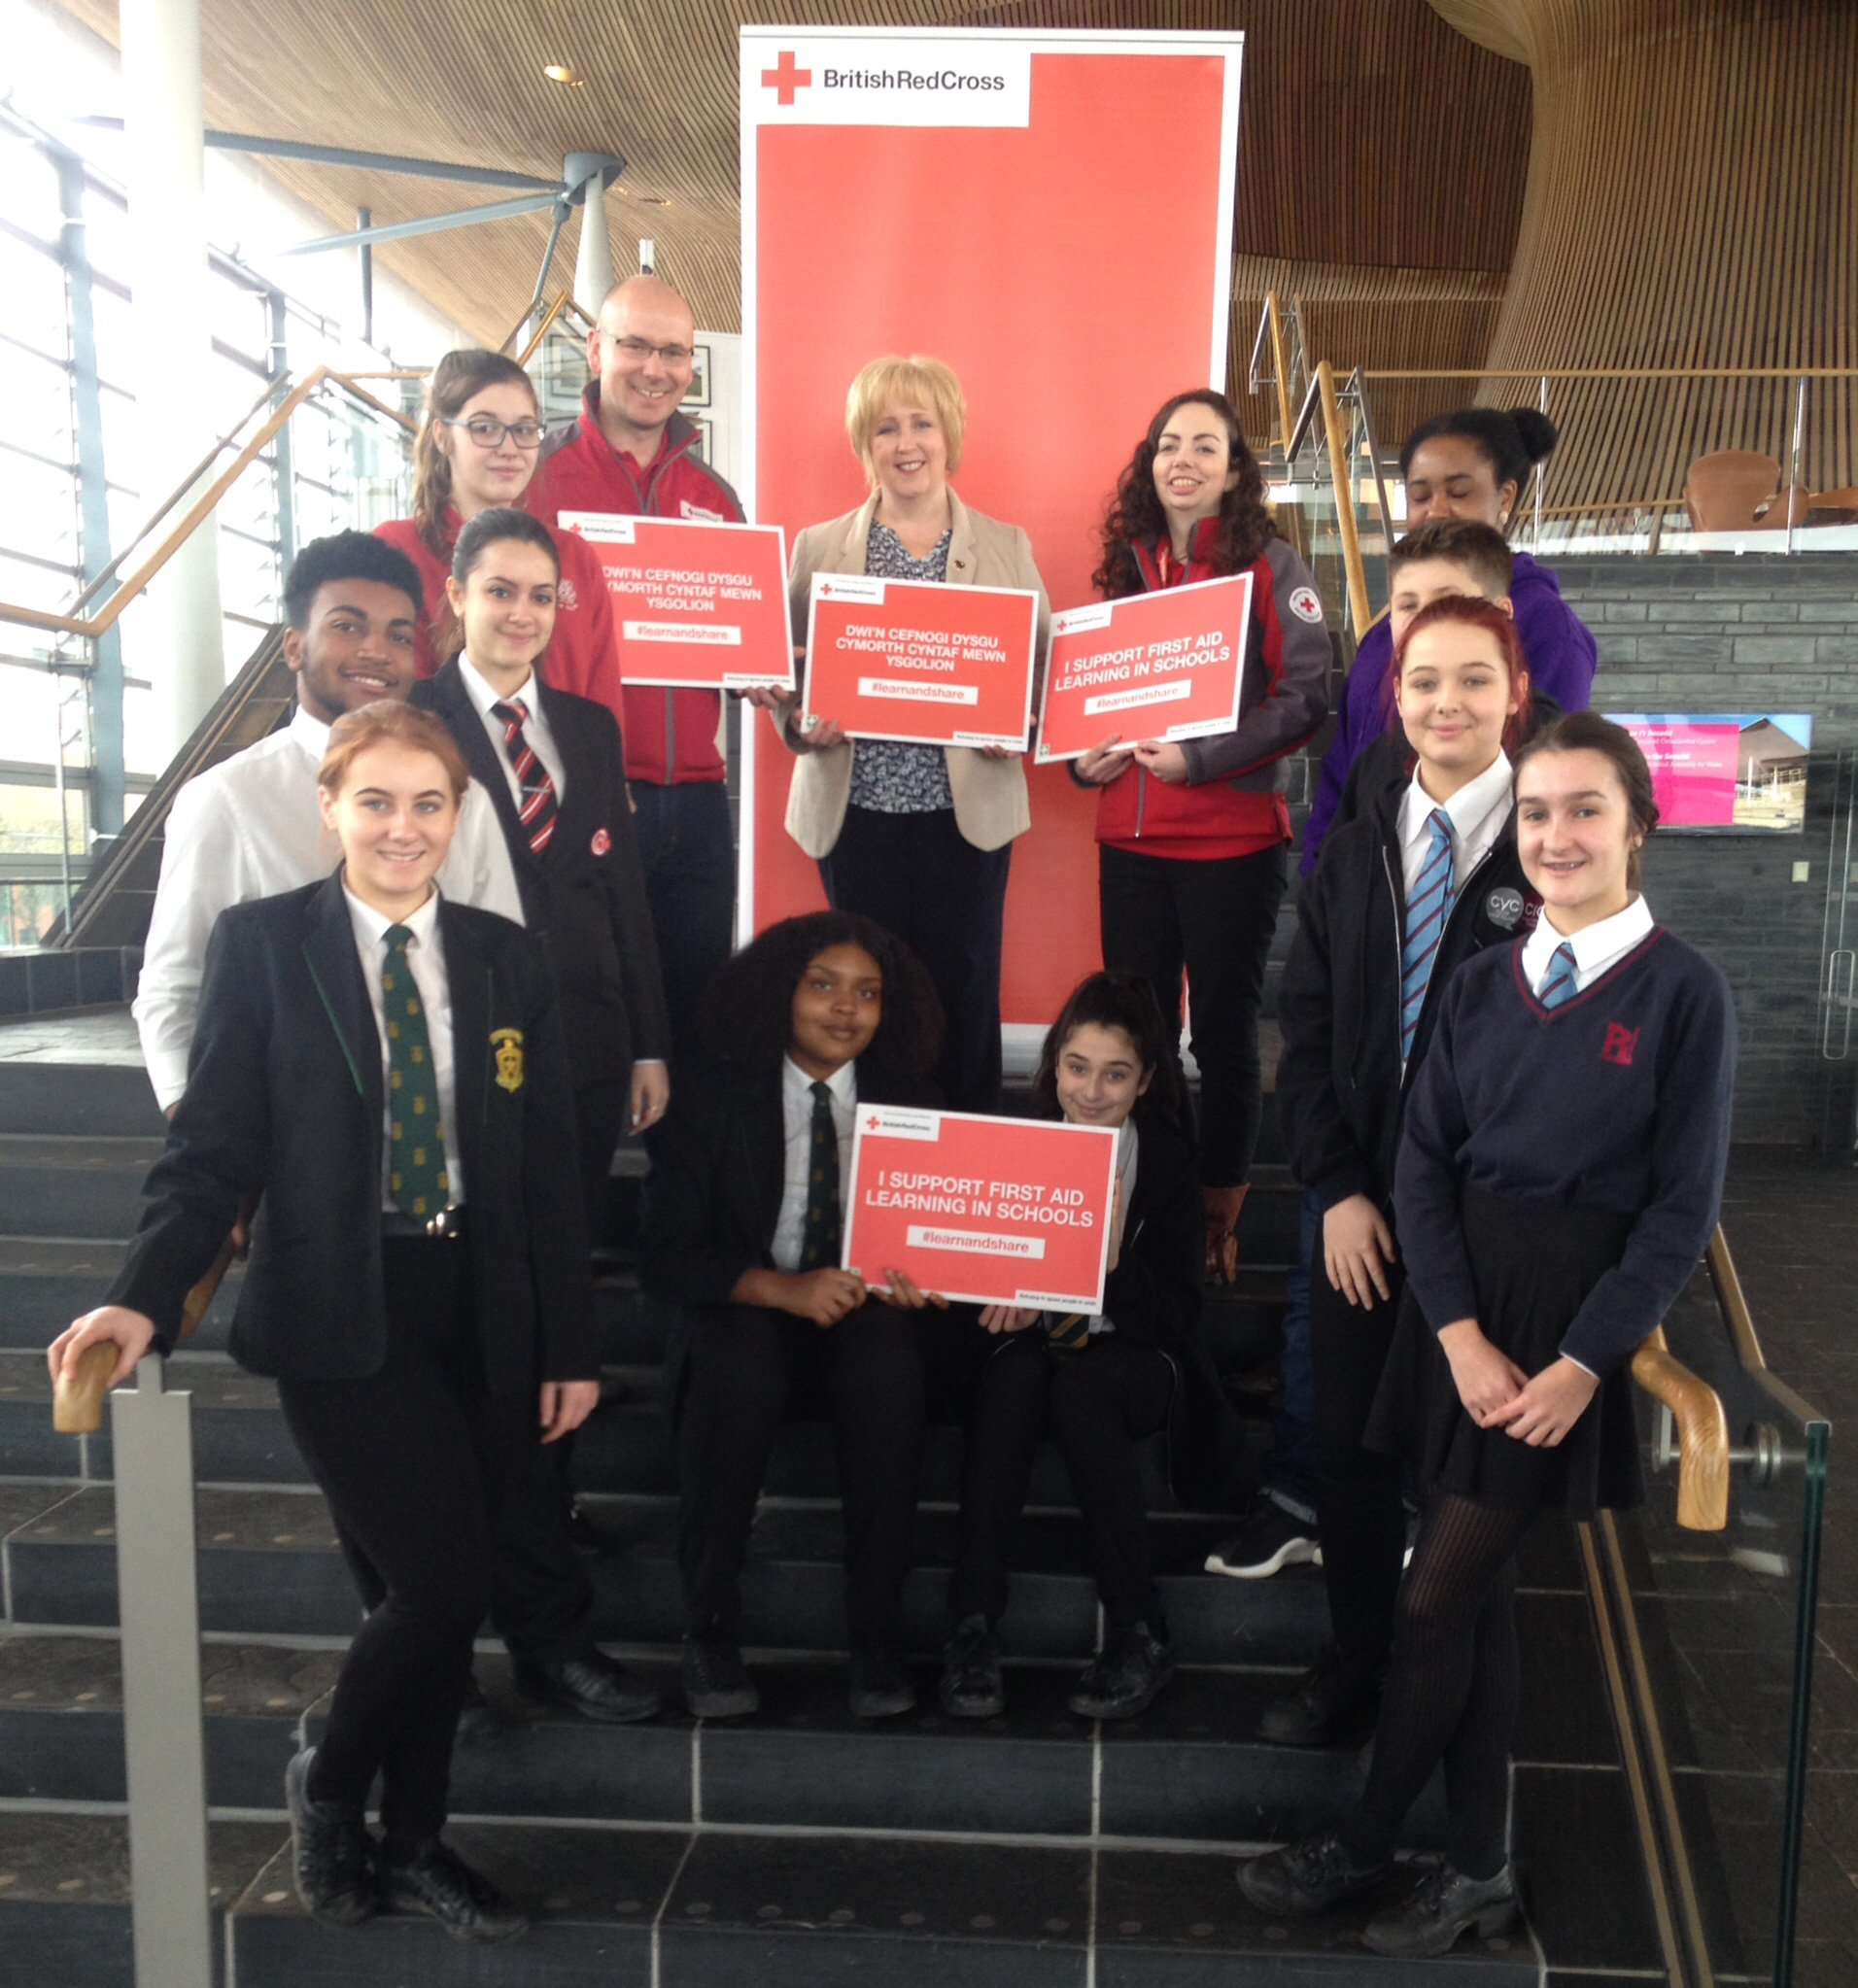 @suzydaviesam with @CardiffYC first aid volunteers at the Senedd. #learnandshare https://t.co/hWMI9dDK3a